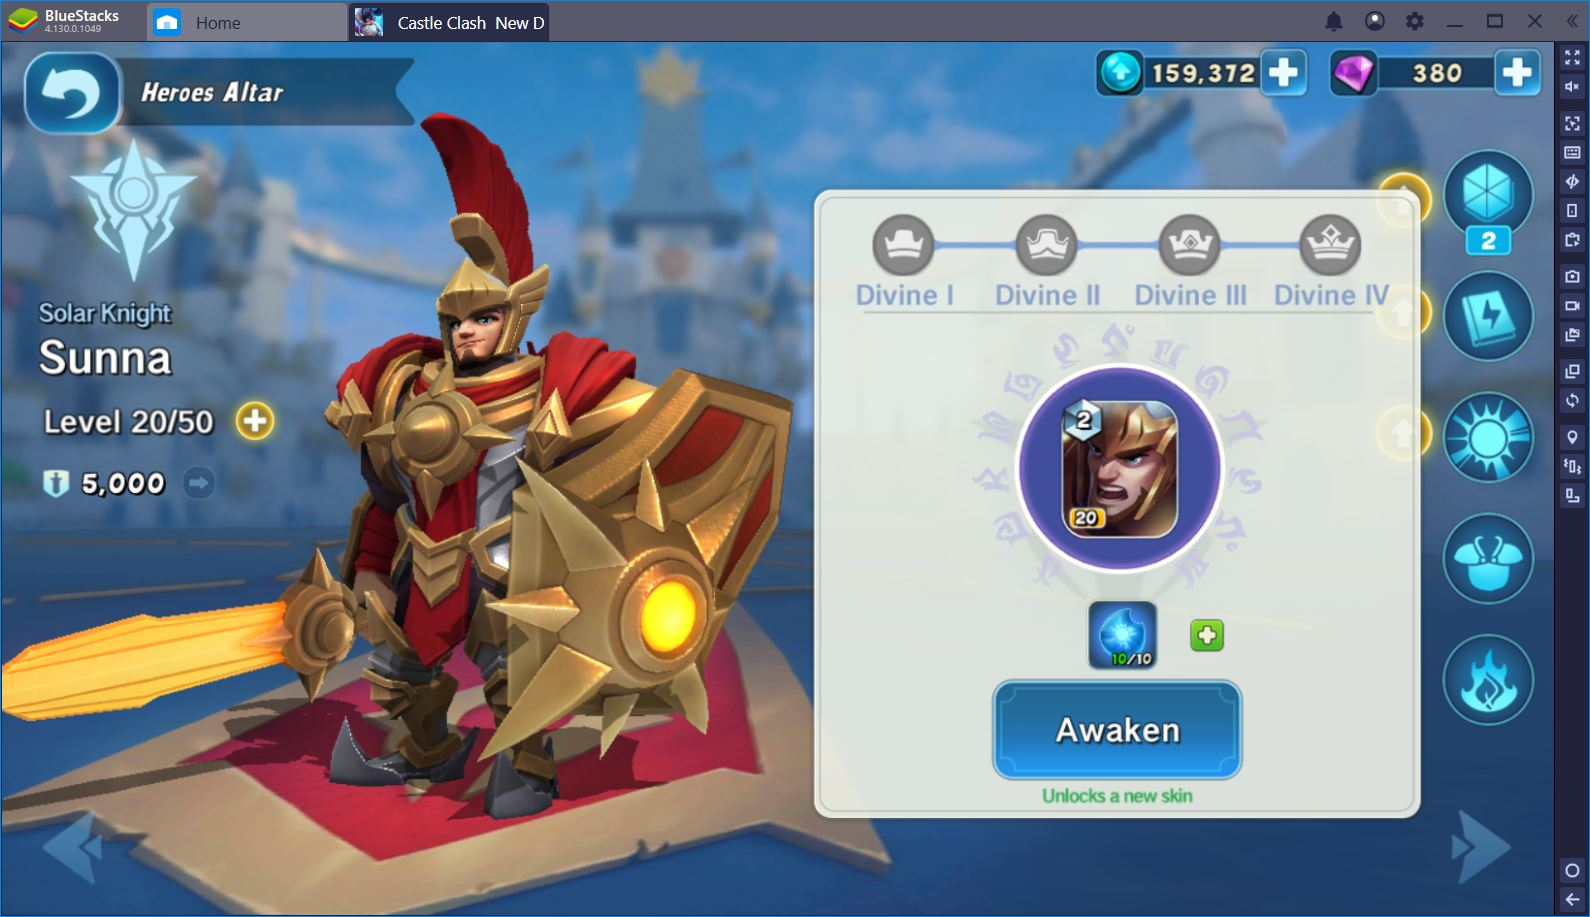 Castle Clash: New Dawn – Obtain and Upgrade Your Favorite Heroes